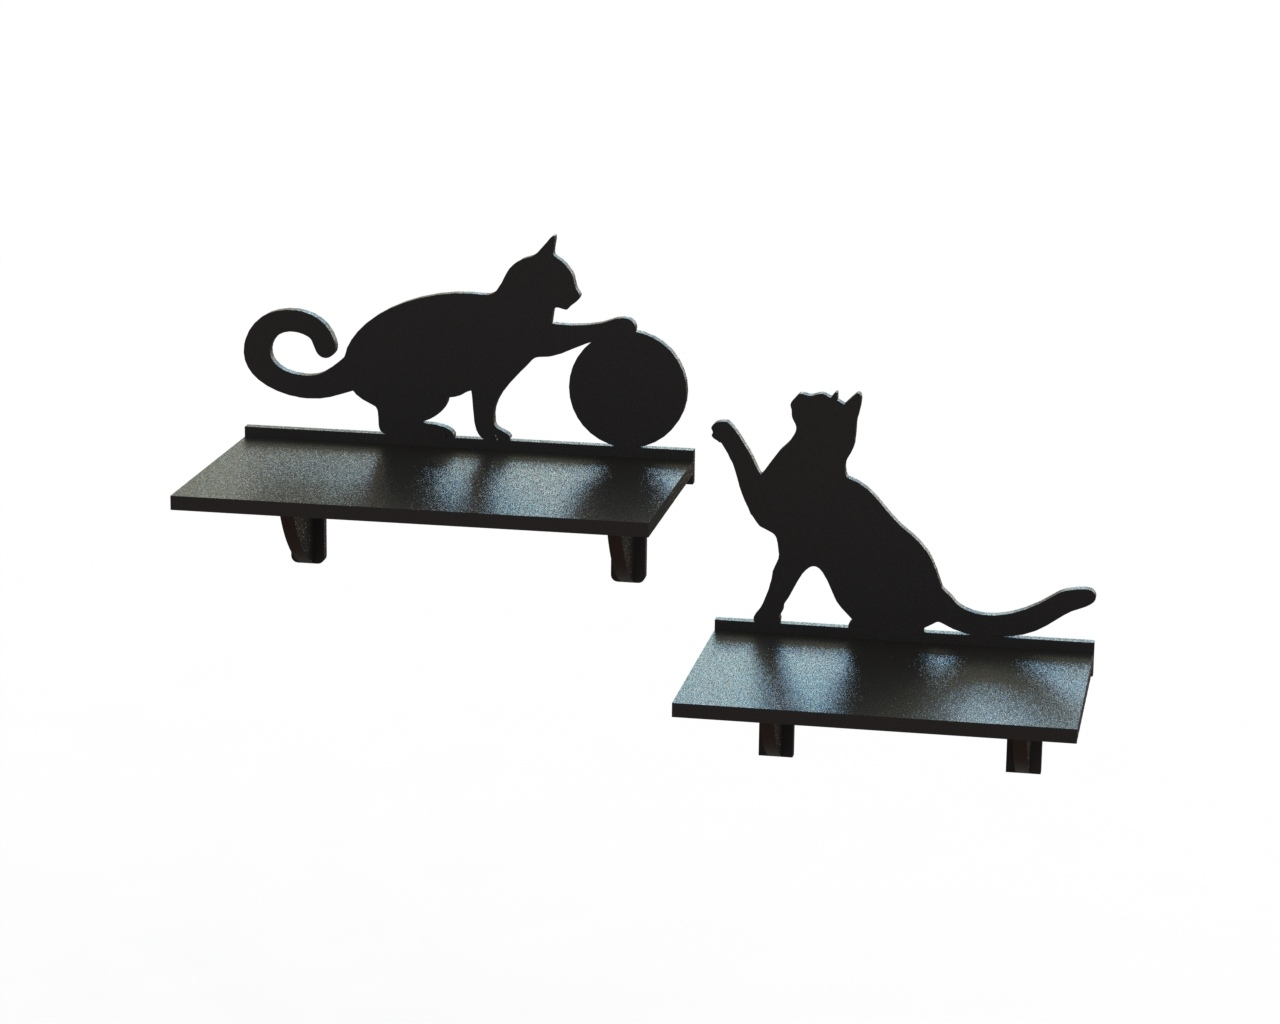 Laser Cut Cat Shelf 3d Puzzle Free CDR Vectors Art